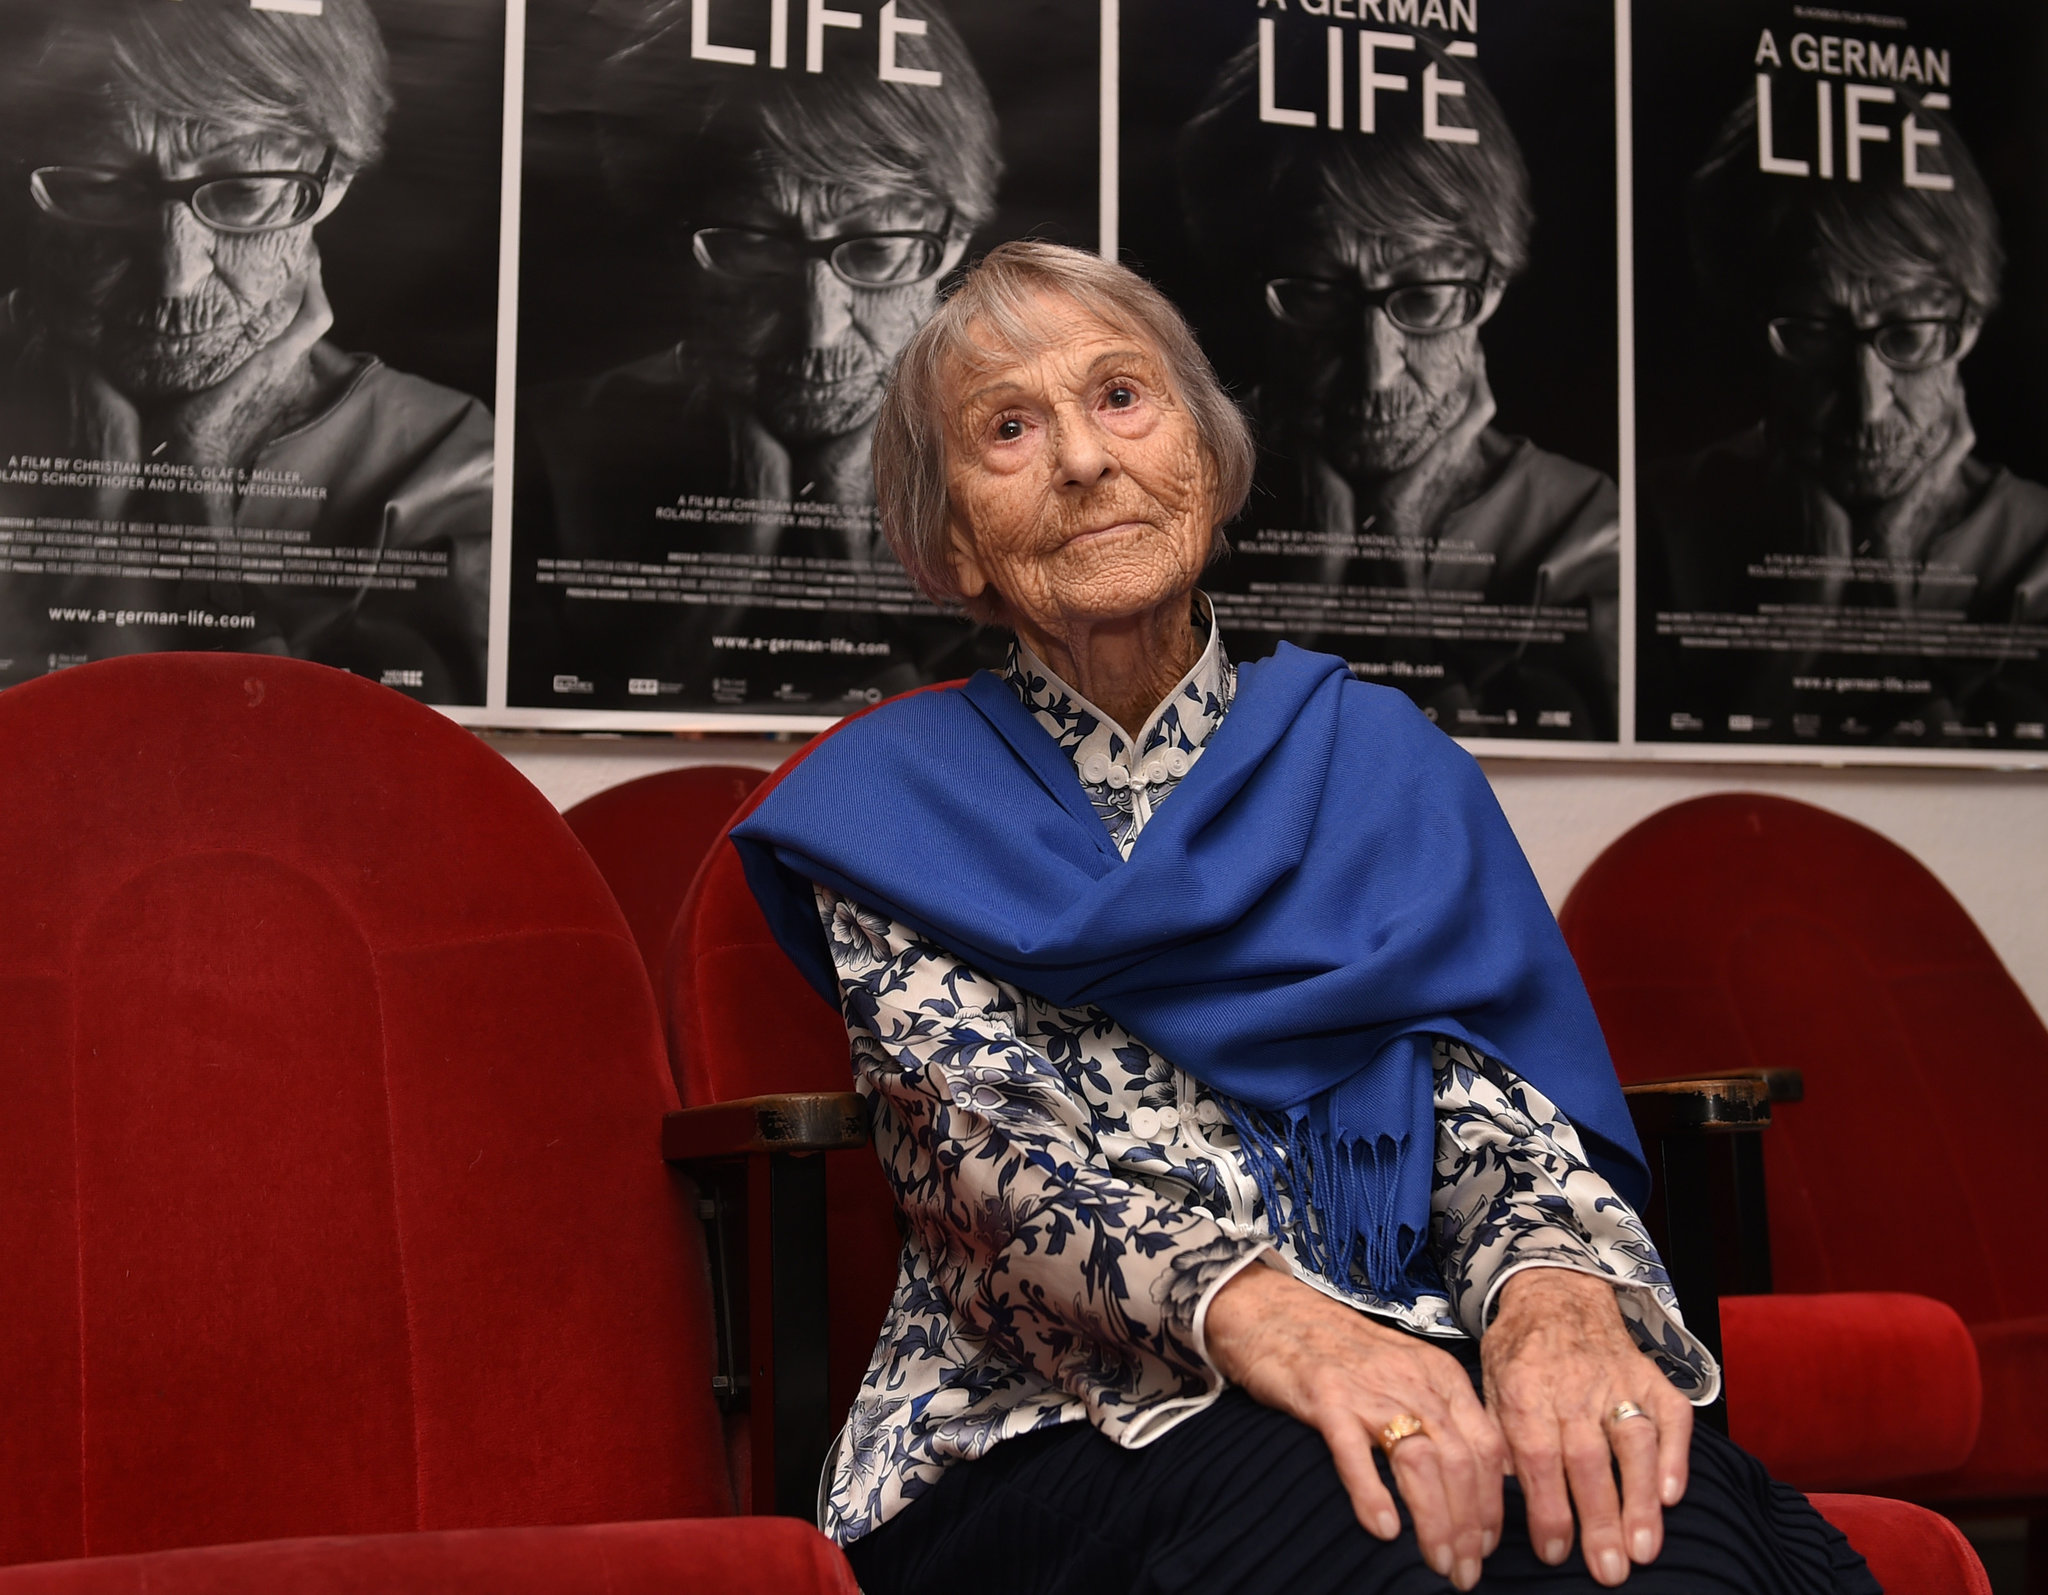 Brunhilde Pomsel in 2016 in front of posters for the documentary A German Life, based on her experiences. Throughout her life, she insisted that she had been ignorant of Nazi atrocities during World War II.